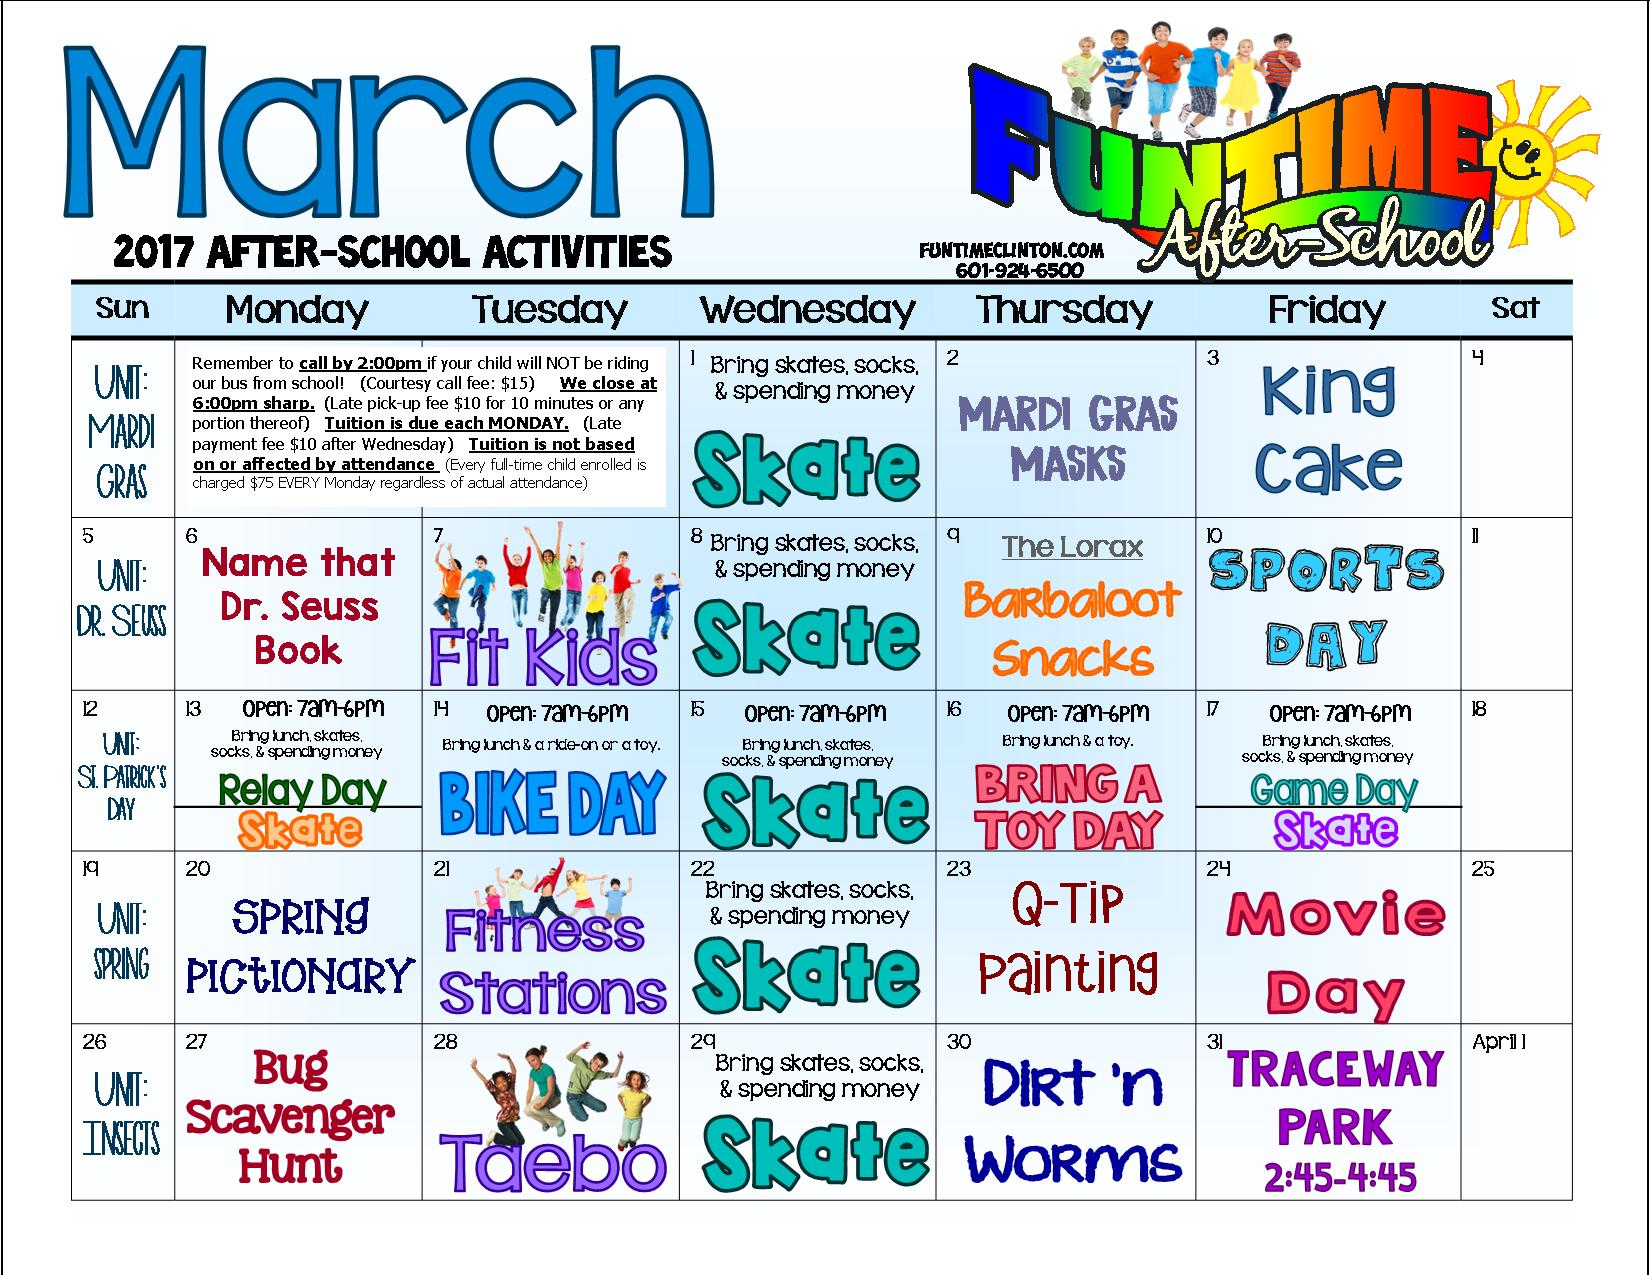 March 17 - AFTERSCHOOL